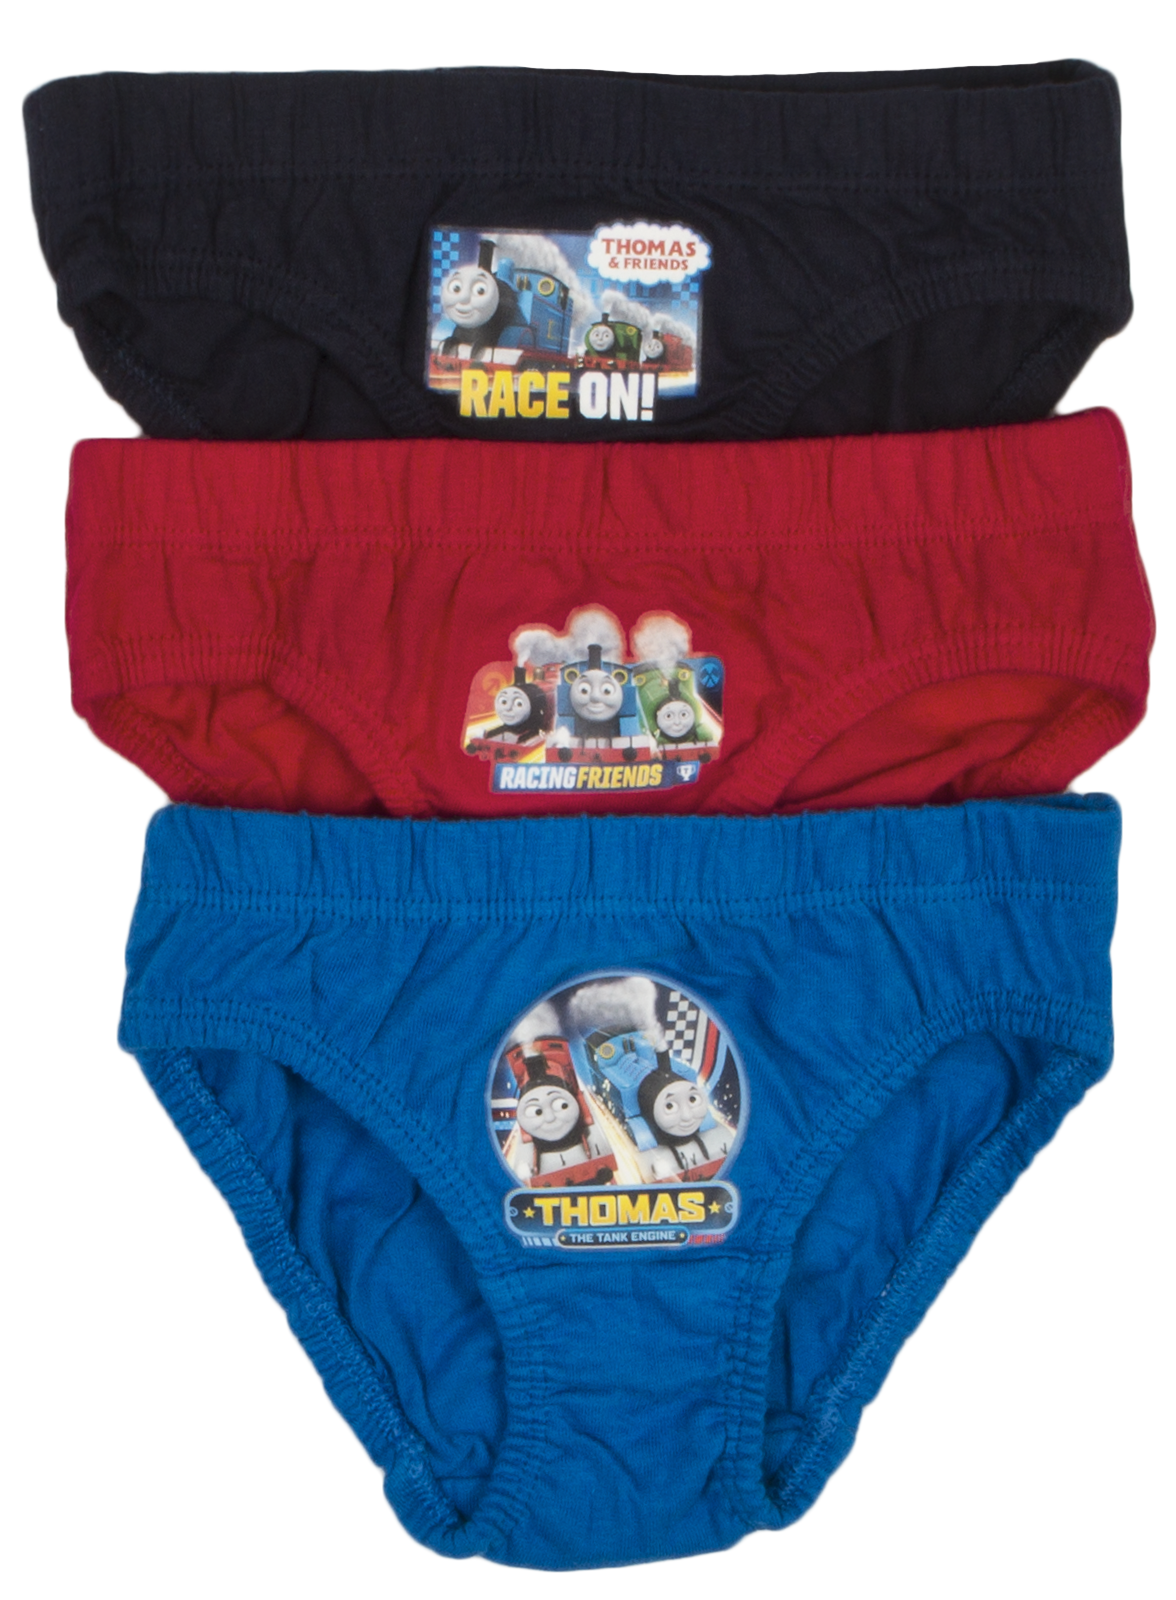 BOYS PJ MASKS 2 IN A PACK VEST OR 3 IN PACK BRIEF UNDERWEAR 18 MONTHS TO 5 YEARS